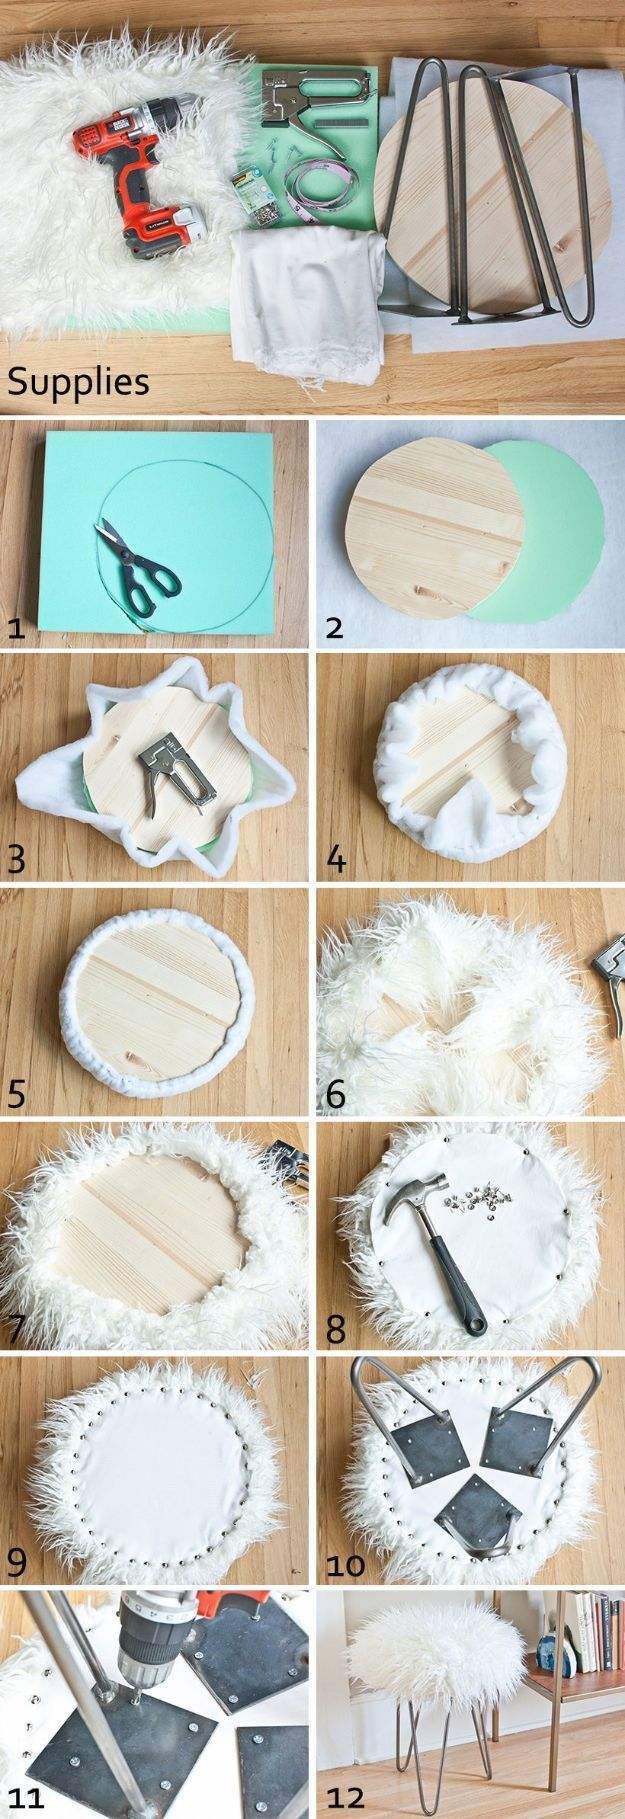 cool diy bedroom ideas. Simple Diy DIY Teen Room Decor Ideas For Girls  Faux Fur Stool With Hairpin Legs Cool  Bedroom Decor Wall Art U0026 Signs Crafts Bedding Fun Do It Yourself Projects  Intended Diy O